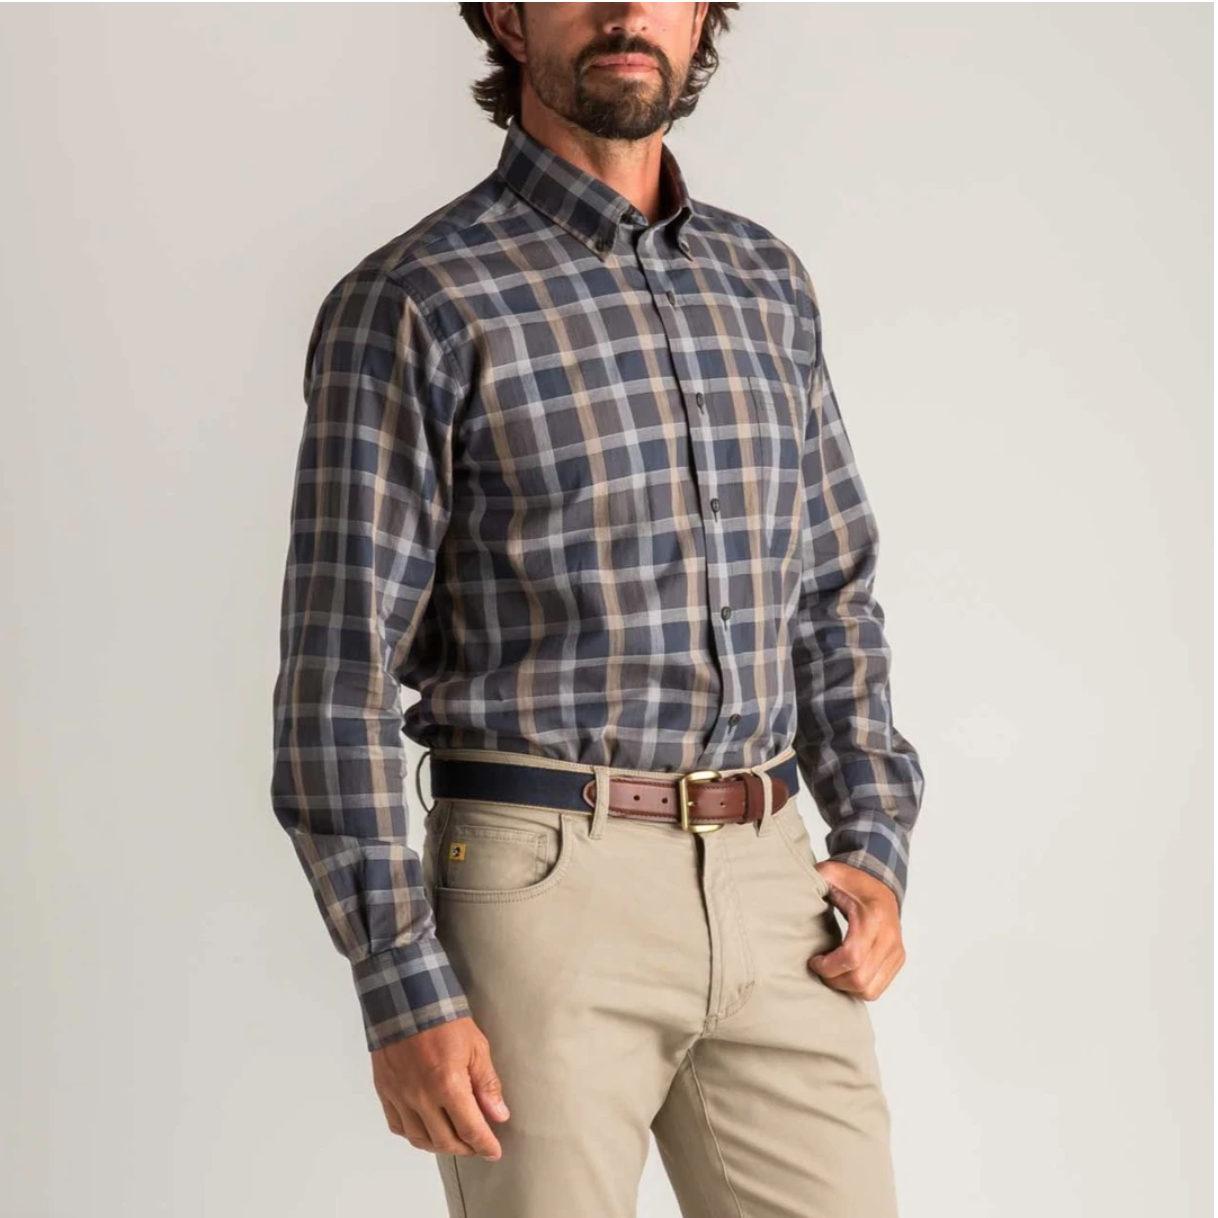 Duck Head Astor Herringbone Plaid Shirt